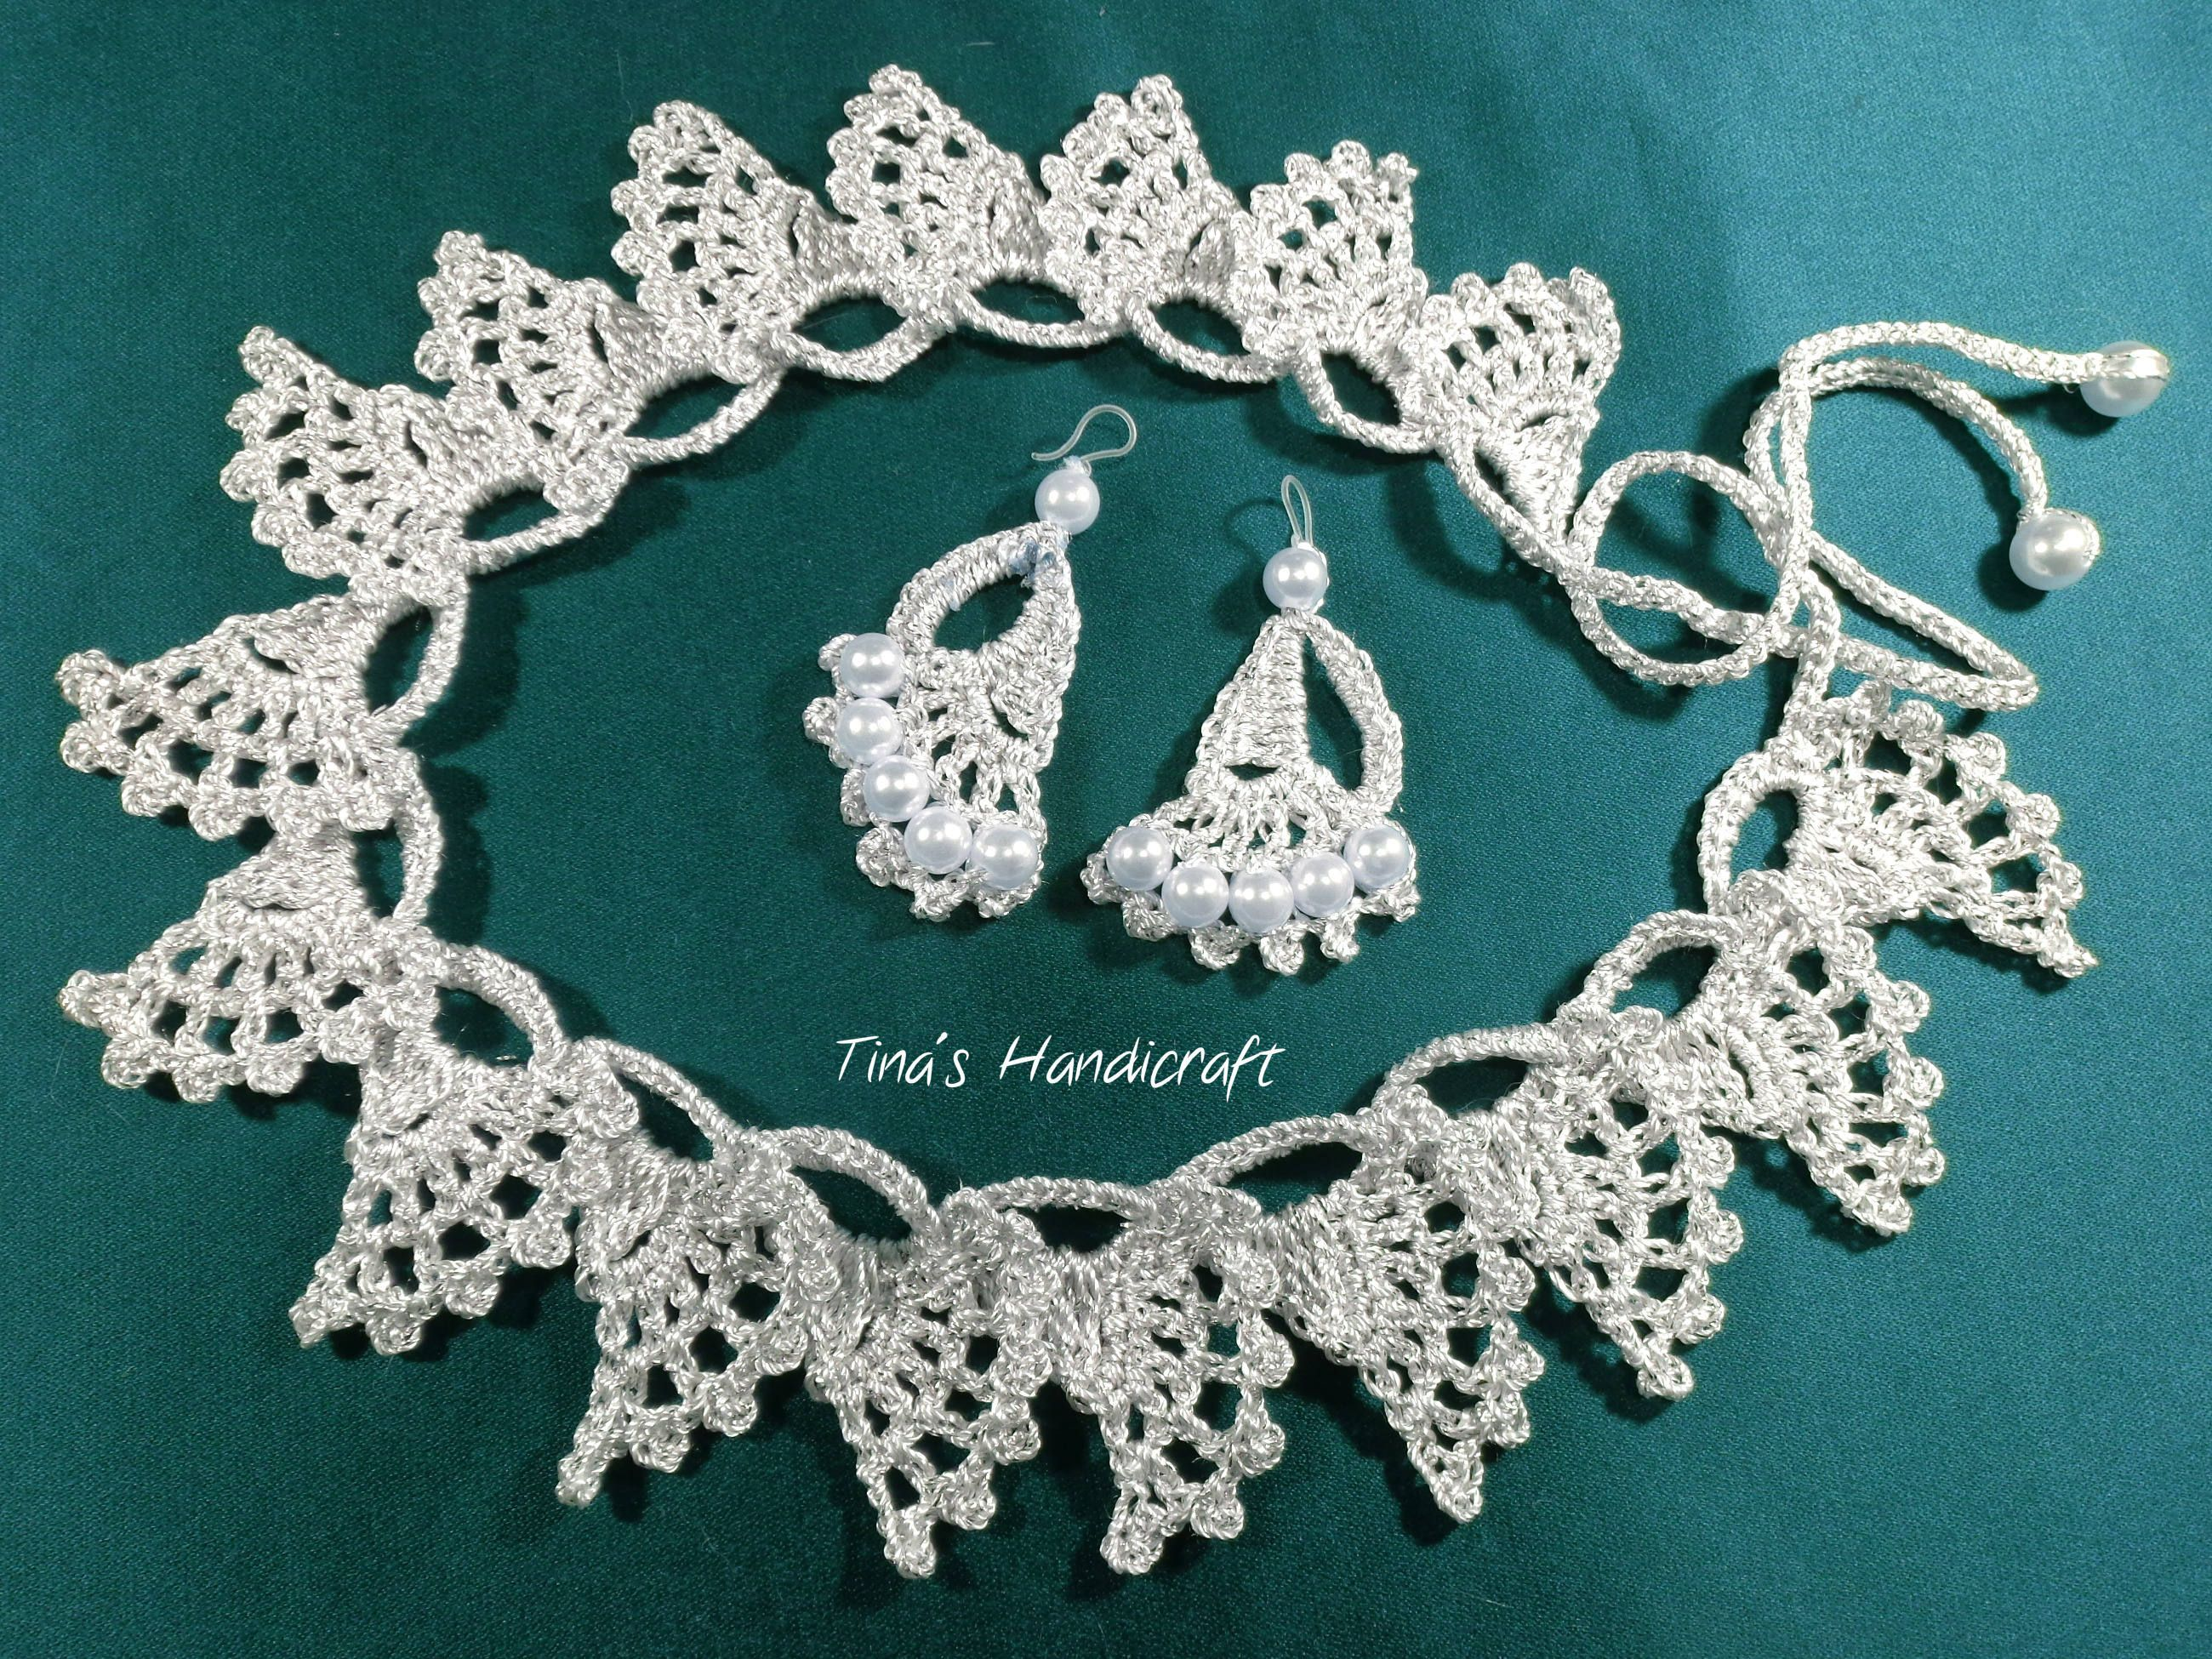 wedding crochet necklace & earrings with beads, gift ideas, wedding accessory, bridal gadget,crochet clothing trimmings,metal thread by TinasHandicraftGr on Etsy